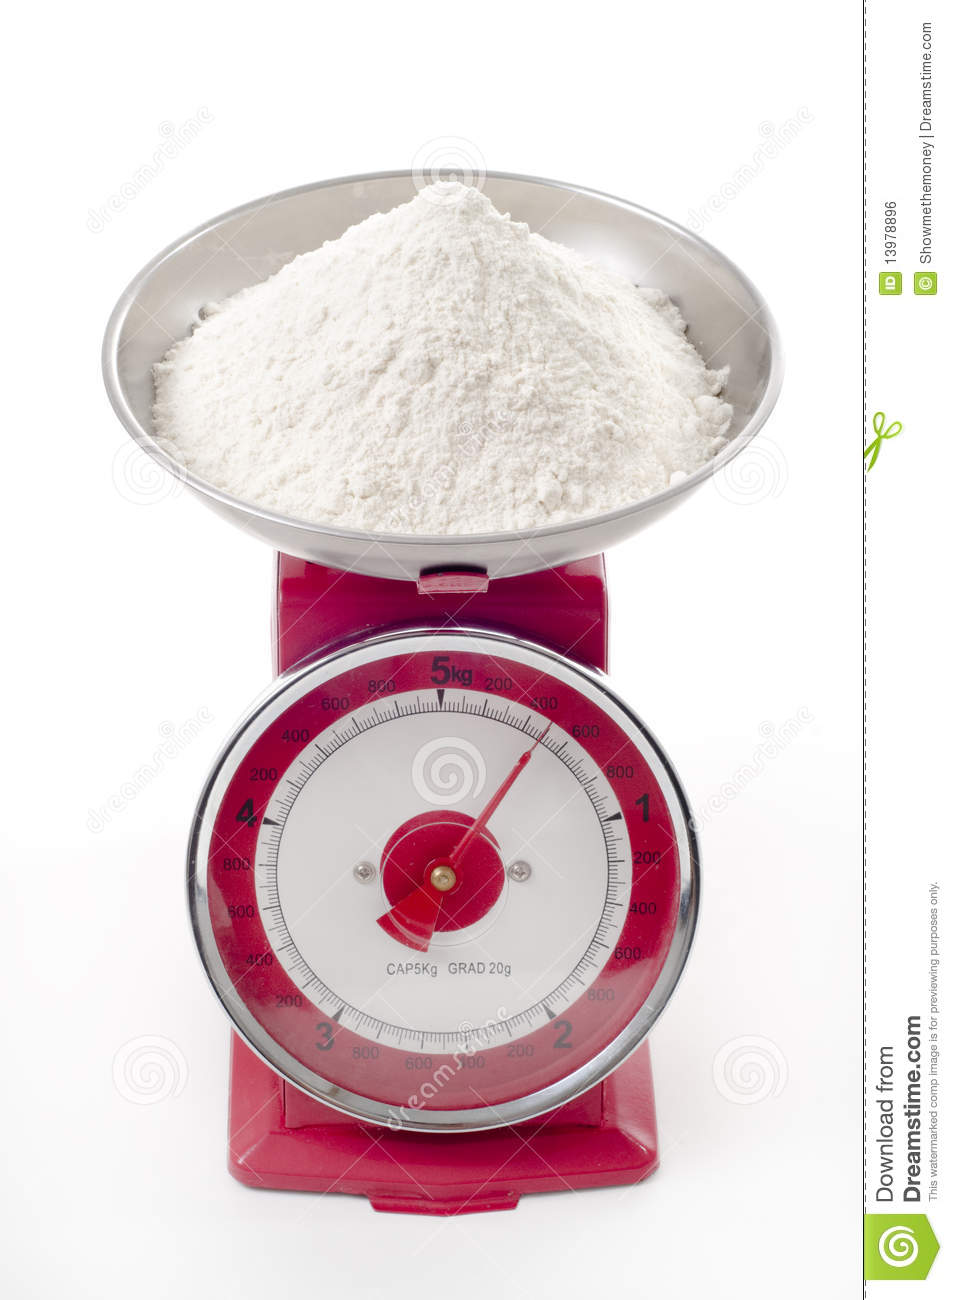 Flour On Scales Royalty Free Stock Image Image 13978896